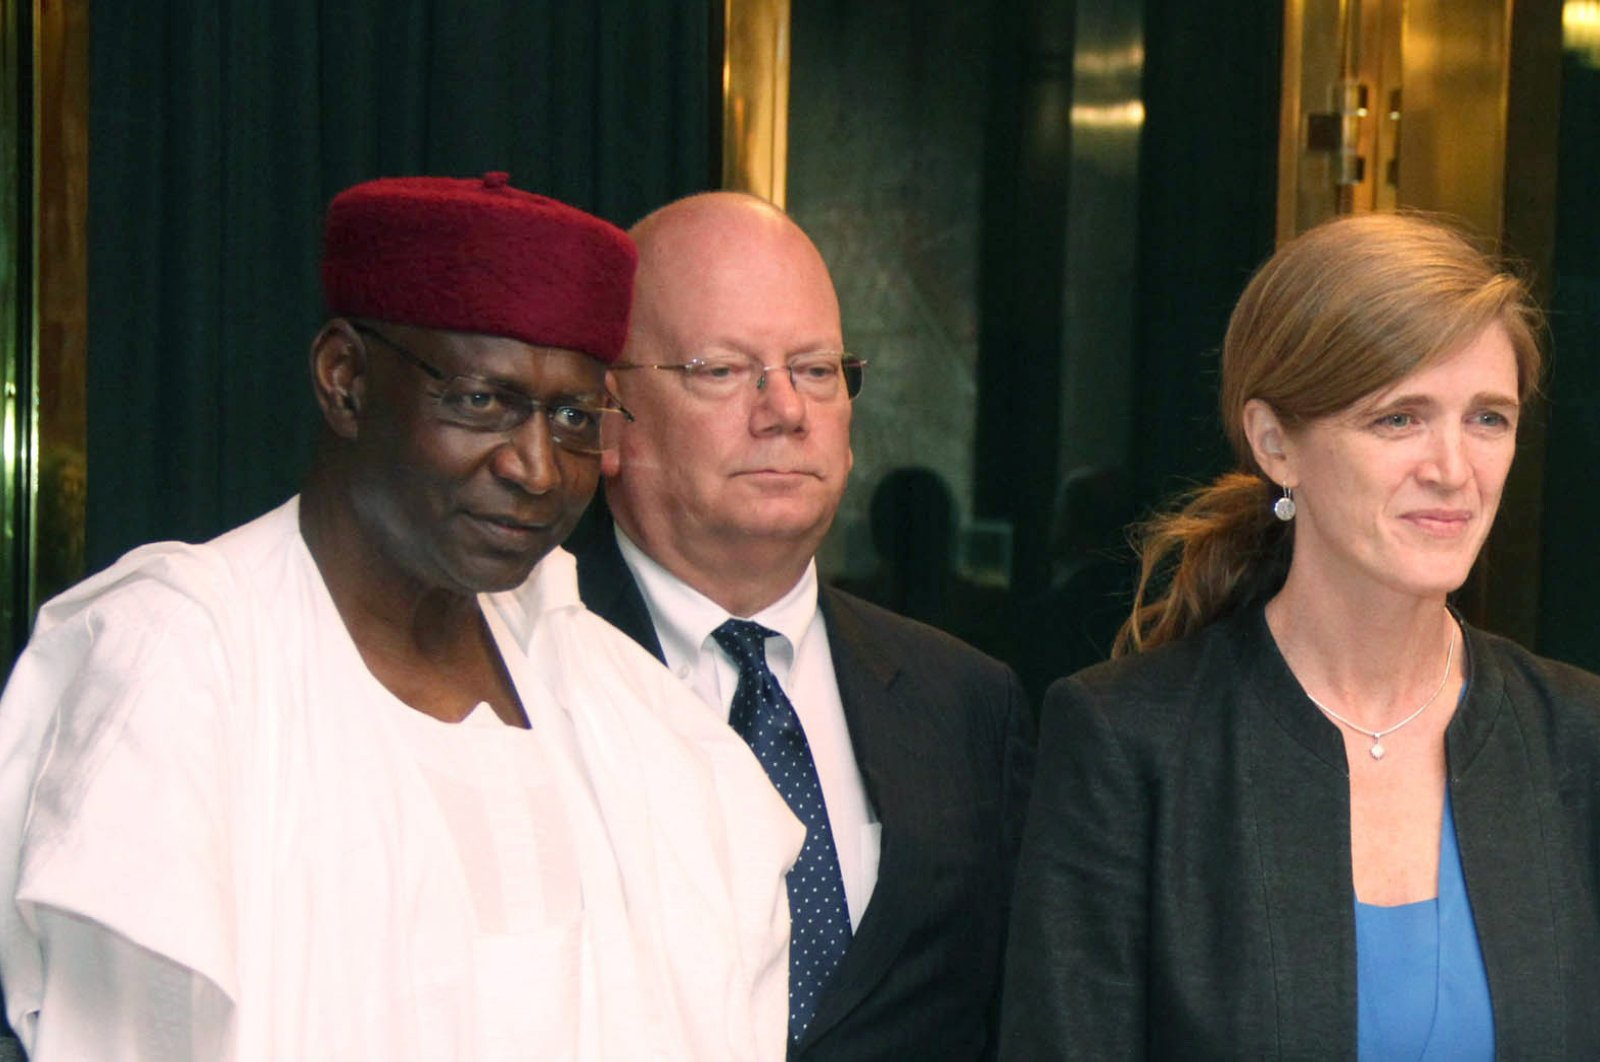 Nigeria's Chief of Staff to the President Abba Kyari (L) stands with US Permanent Representative to the UN Samantha Power (R) and US Ambassador to Nigeria James Entwistle (2nd L) in Abuja, on April 21, 2016. (AFP Photo)